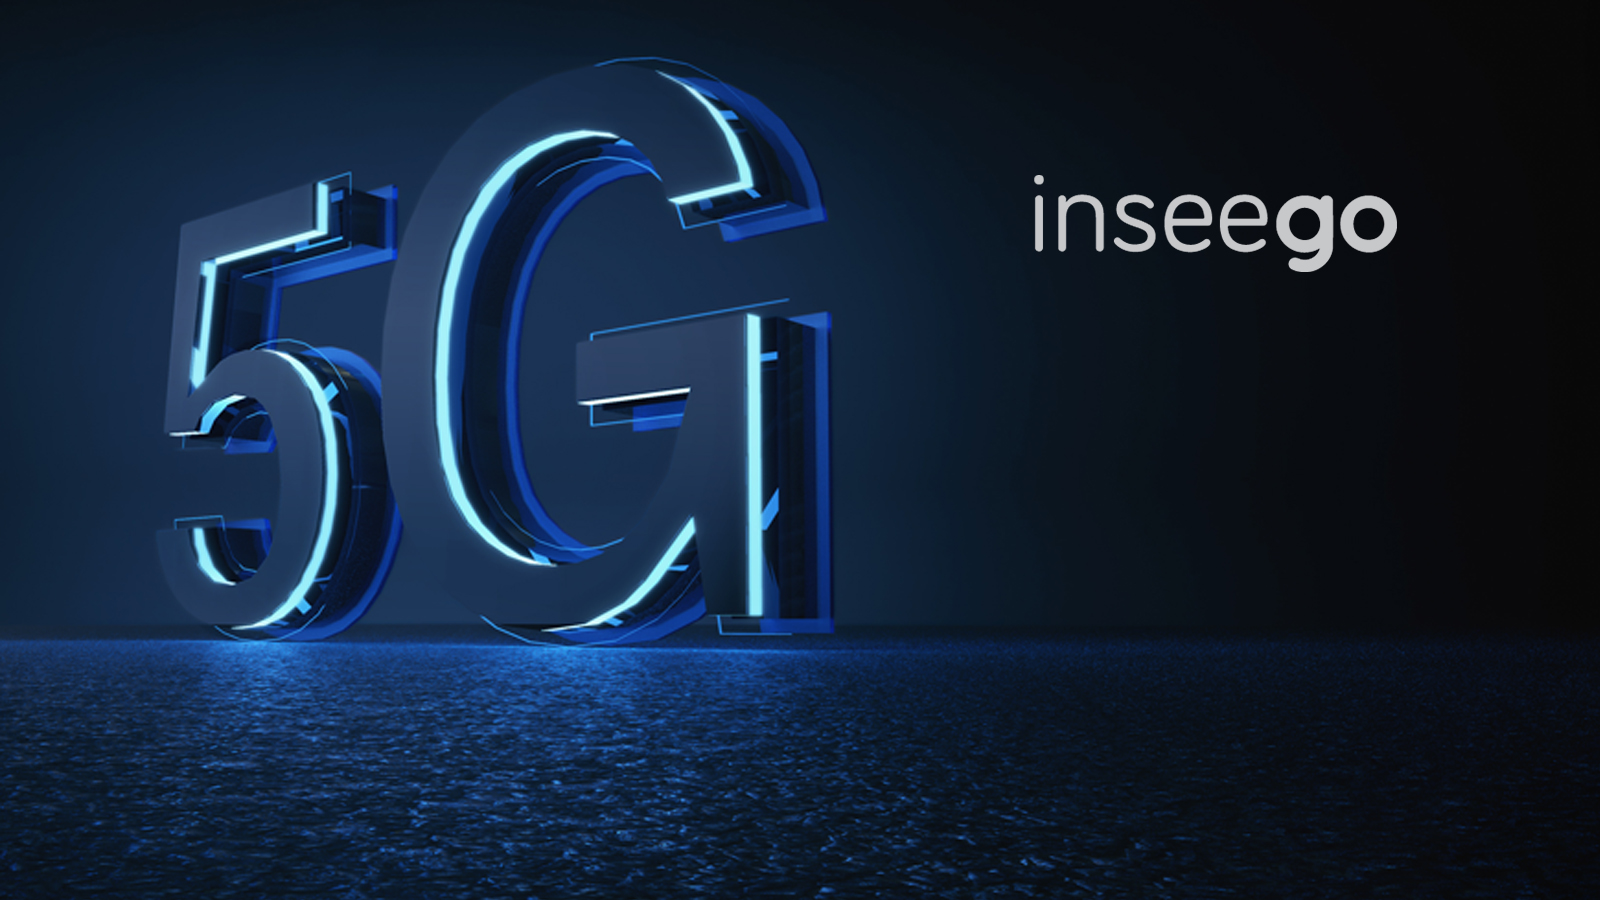 5G NR: Inseego and Verizon Demonstrate Virtual Reality Telemedicine over 5G at Qualcomm Snapdragon Technology